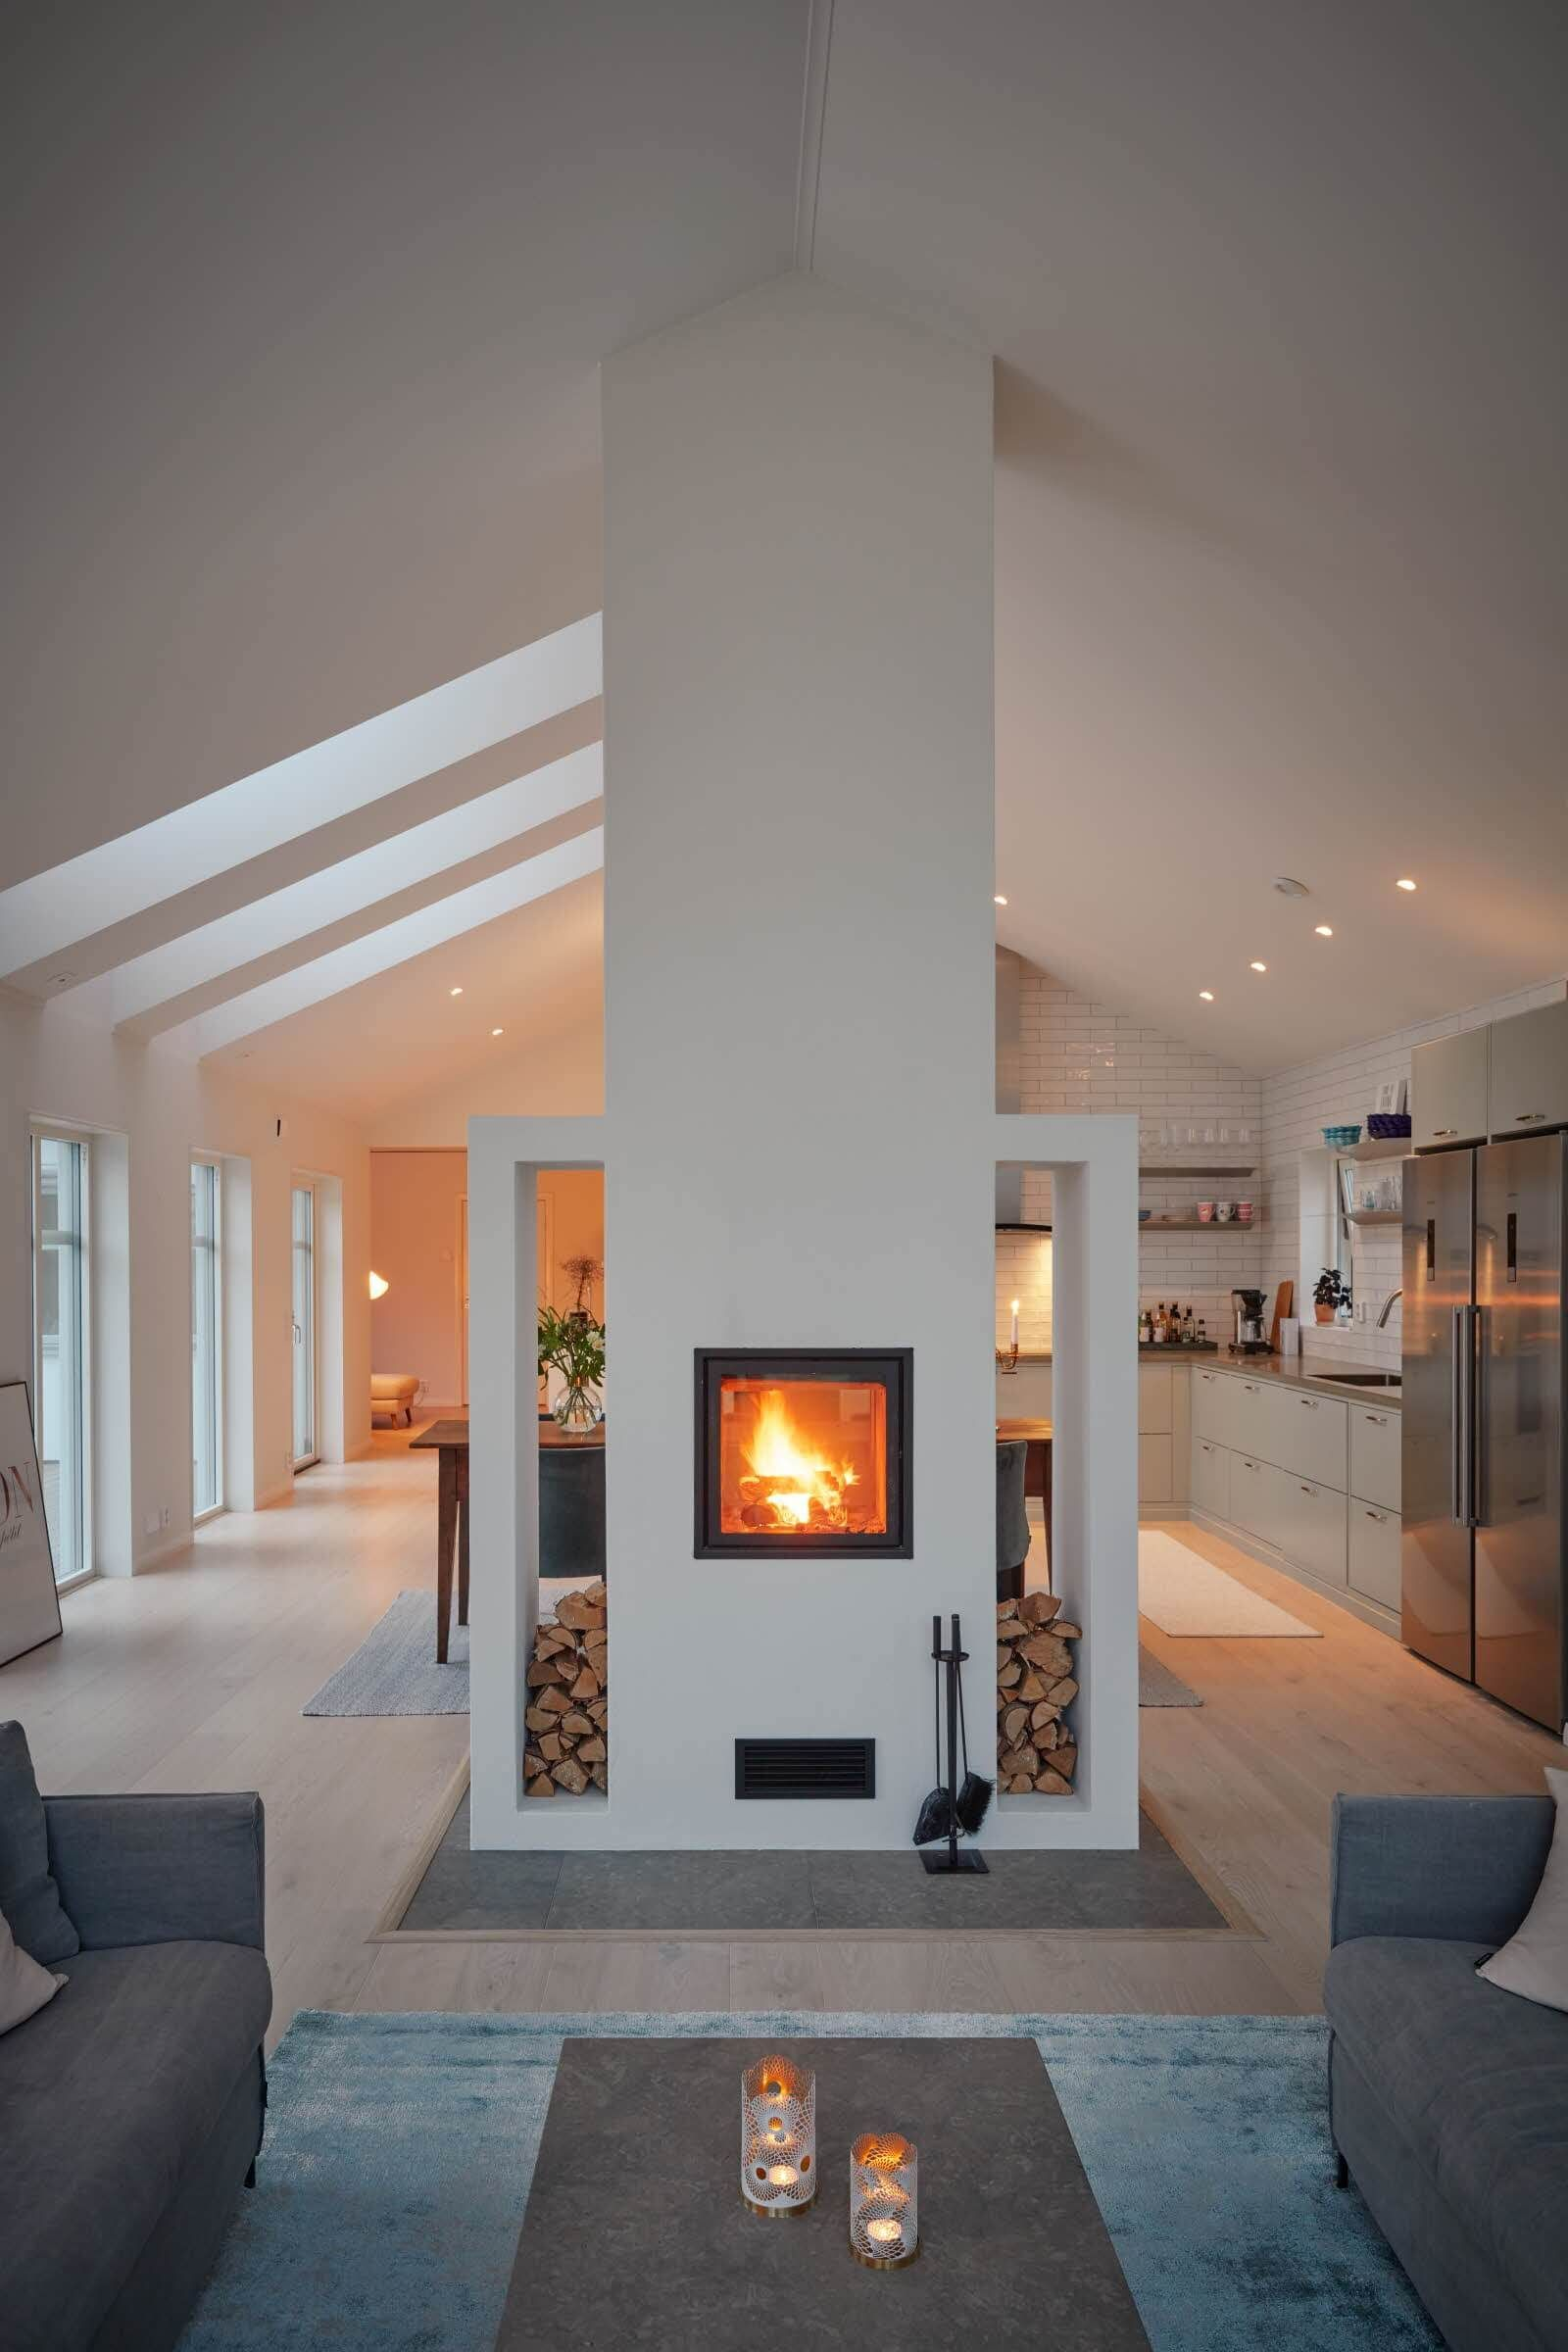 Cheap Home Remodel Contractors Saleprice 17 In 2020 Fireplace